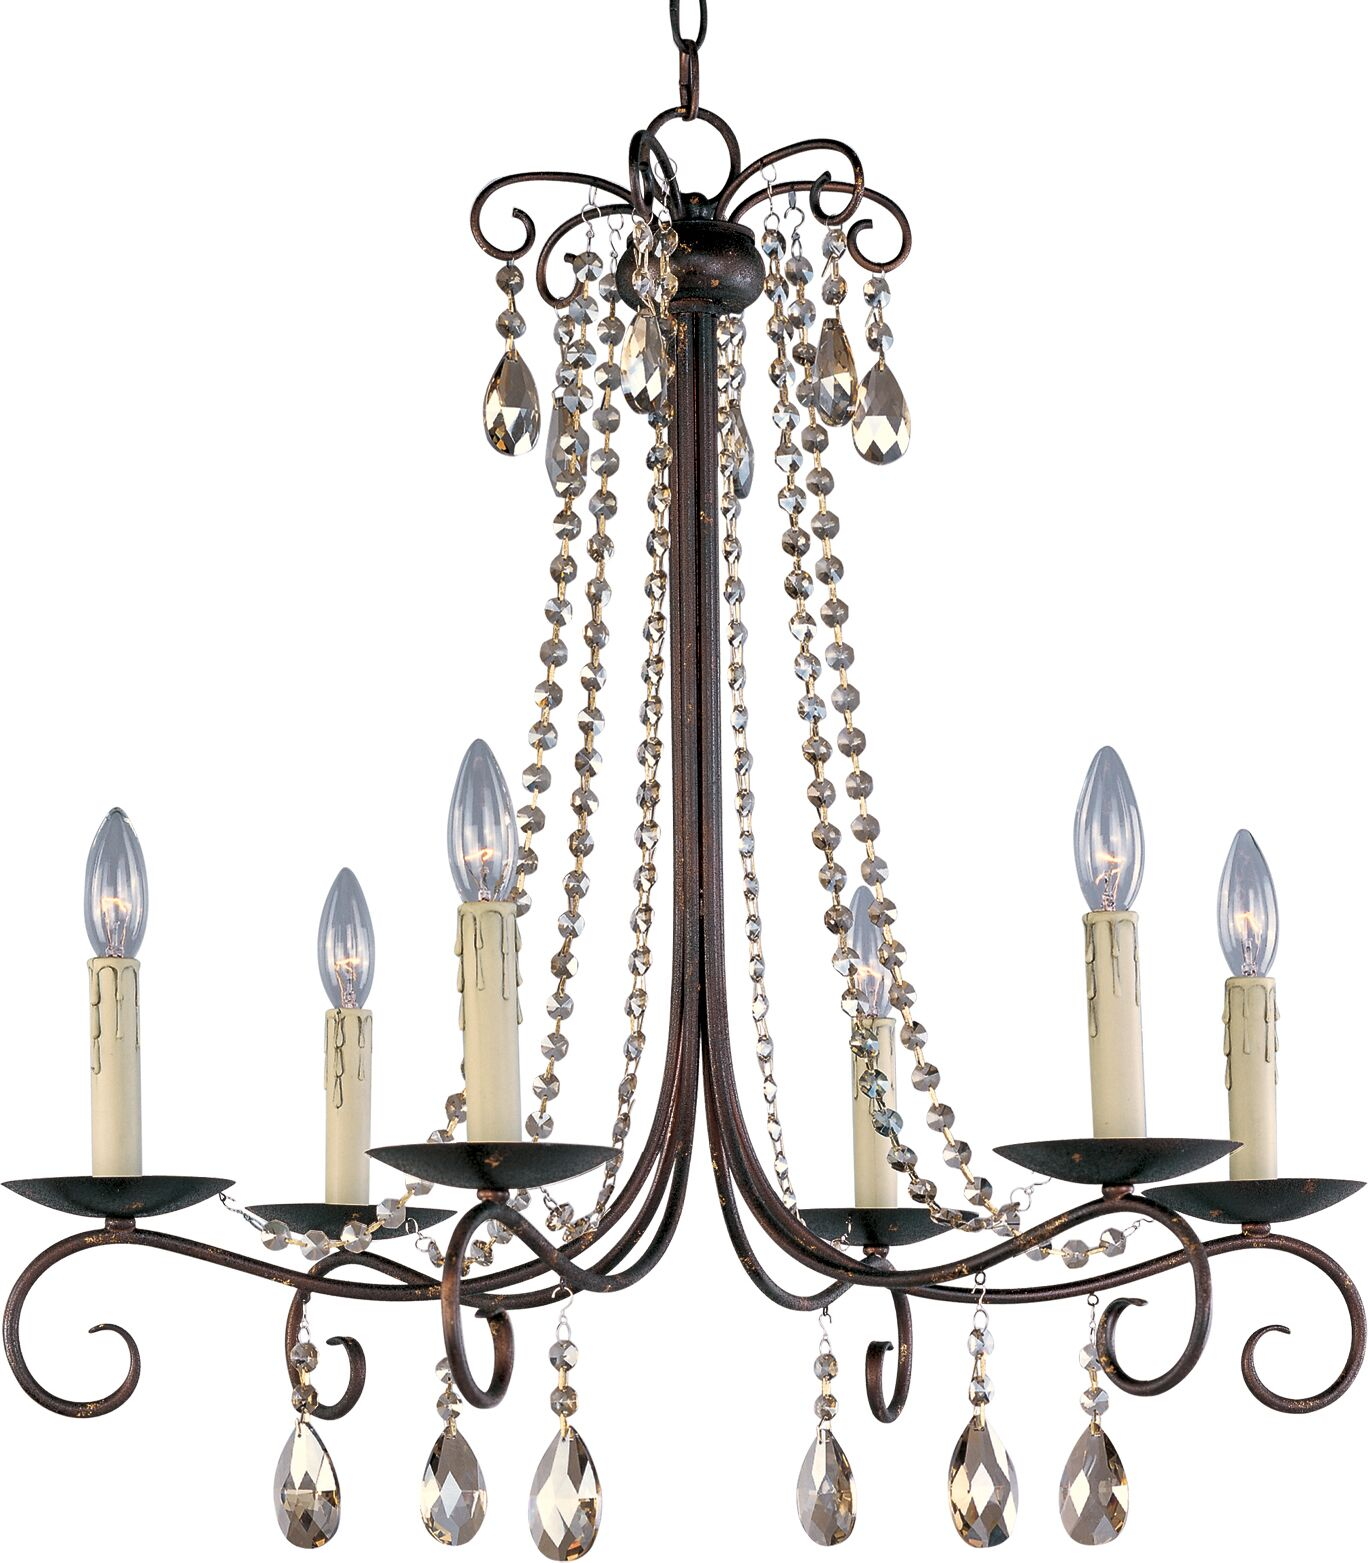 Pancras 6-Light Candle Style Chandelier